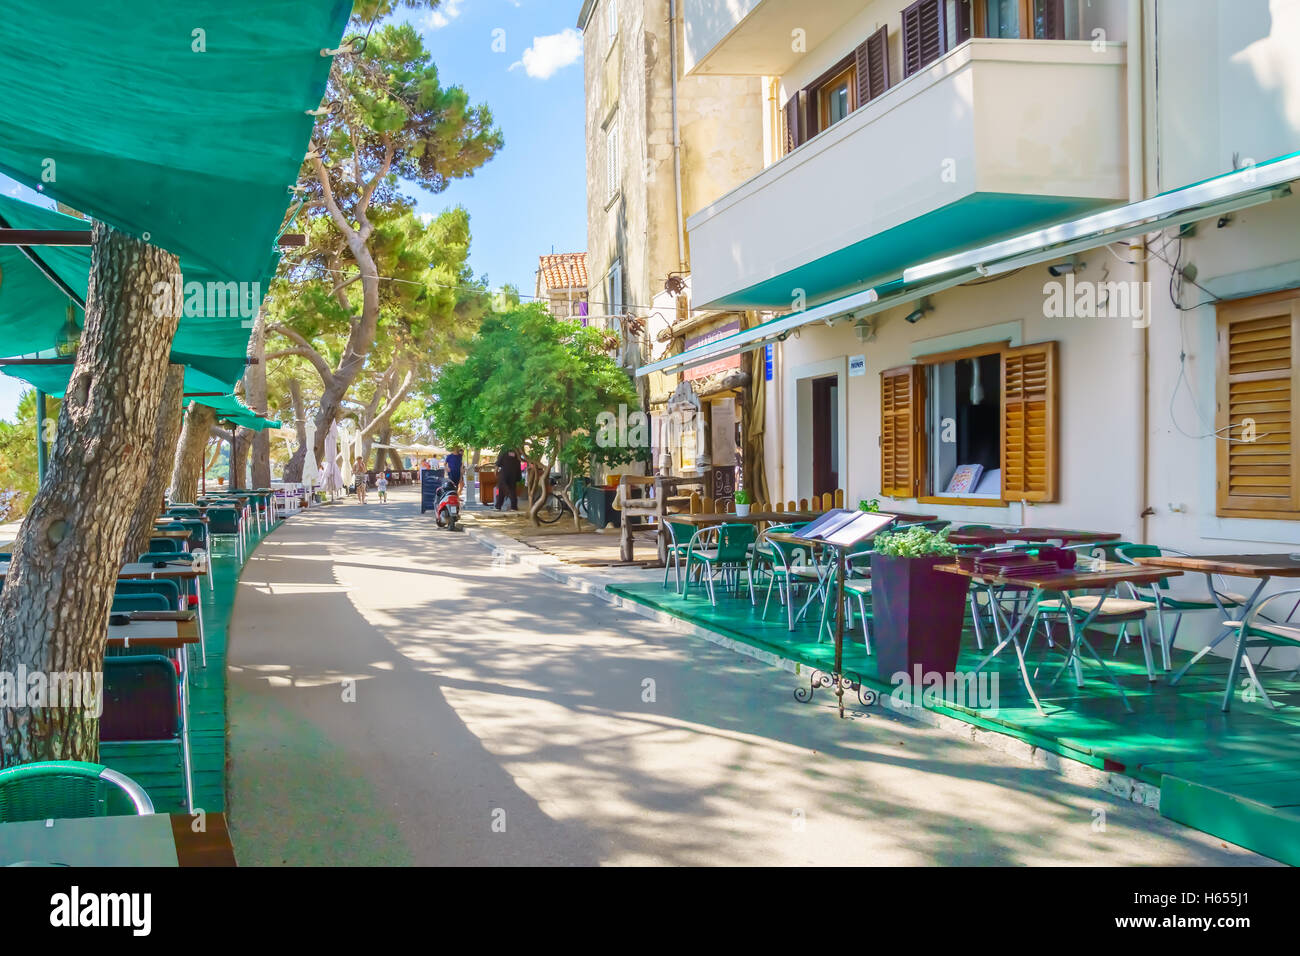 KORCULA, CROATIA - JUNE 26, 2015: Cafe scene, with local businesses, locals and visitors, in the old town of Korcula, - Stock Image